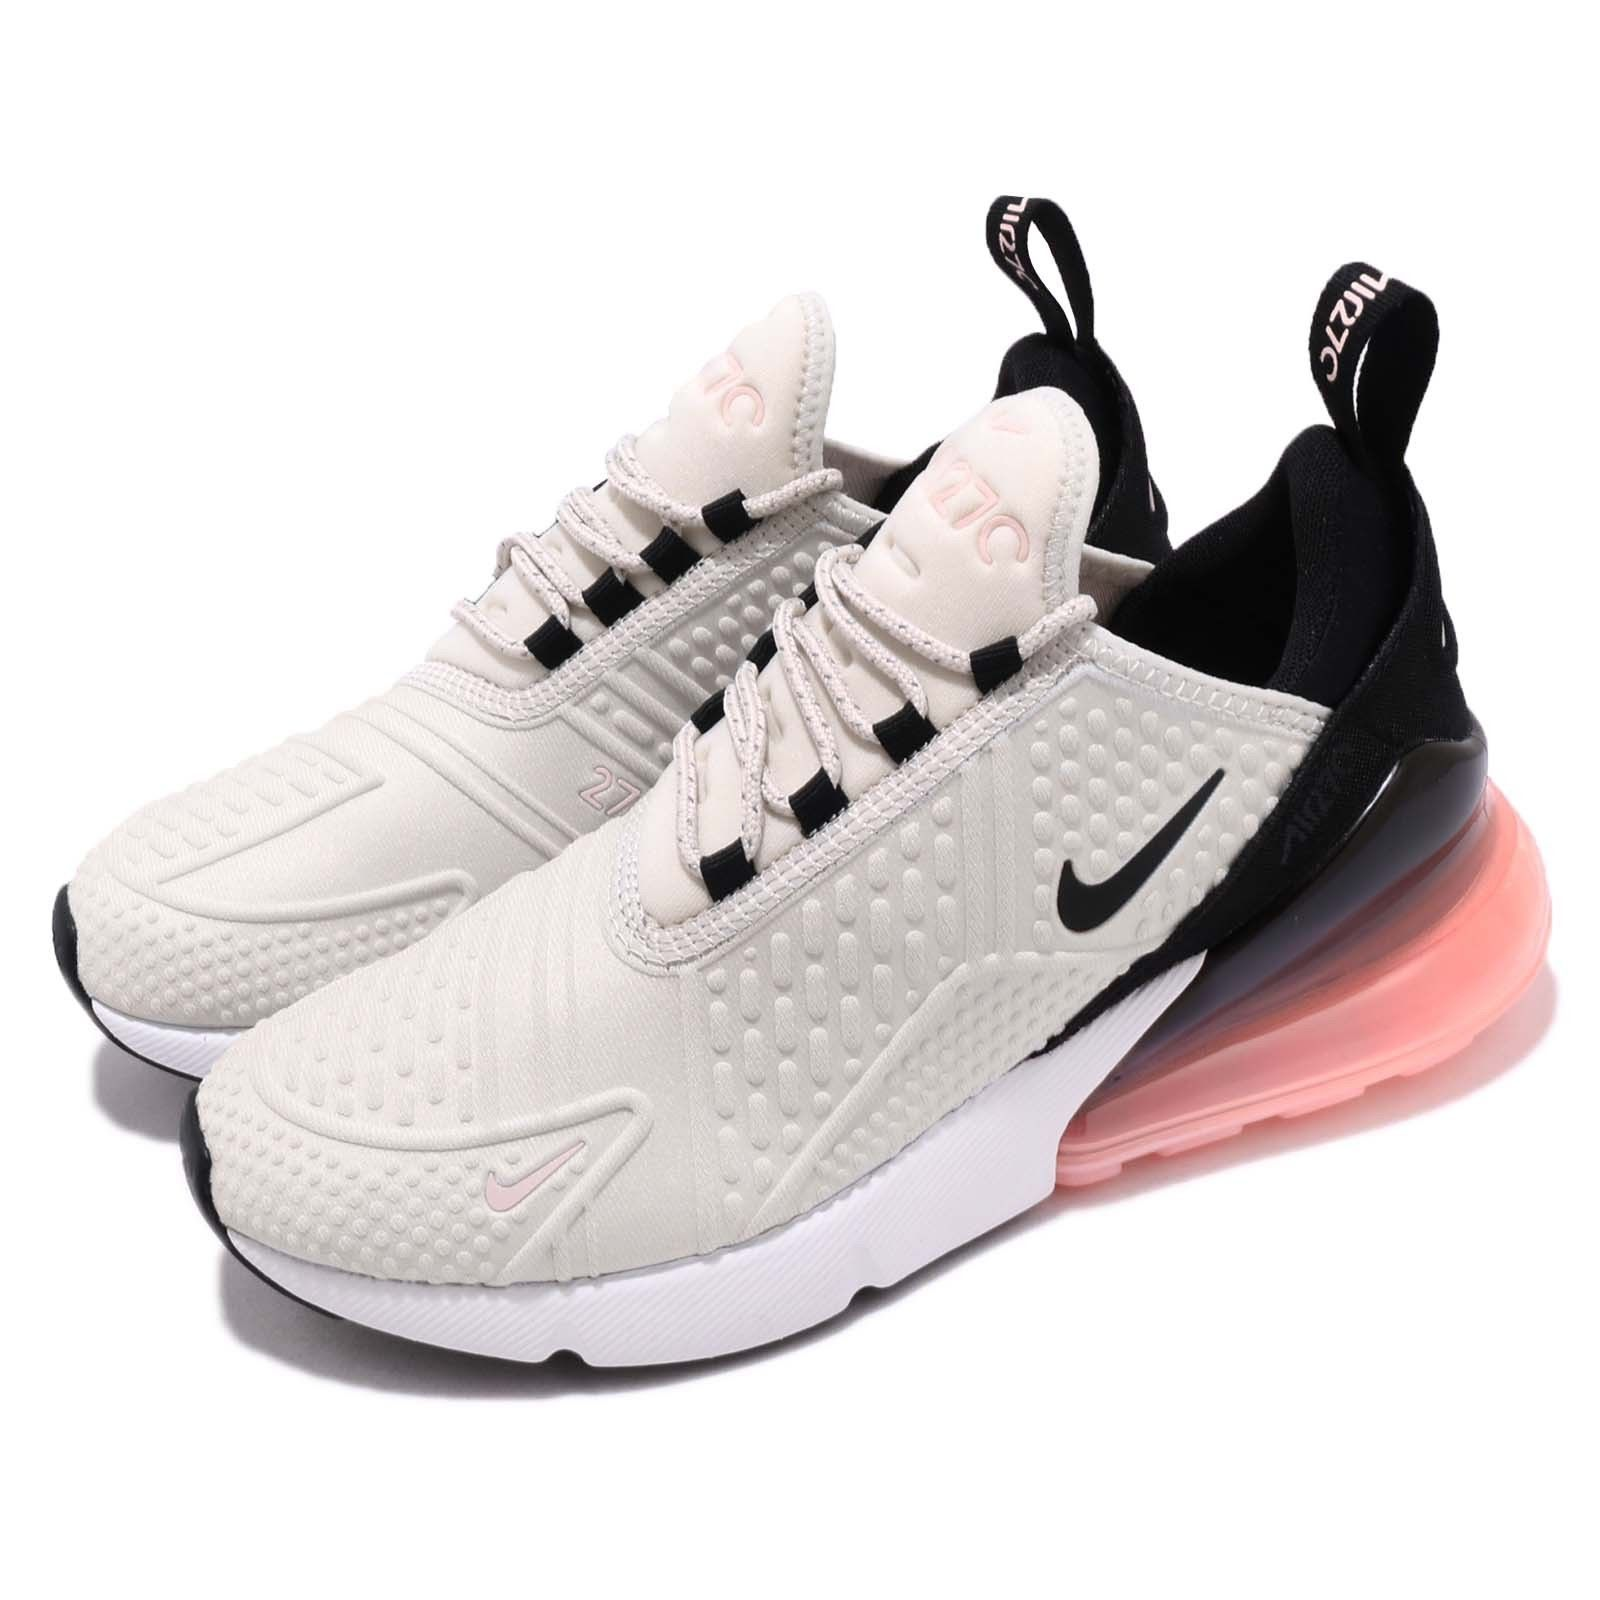 best cheap 8c6d6 b90df  Nike Wmns  AirMax Light Bone Black Pink  Women Running  Shoes